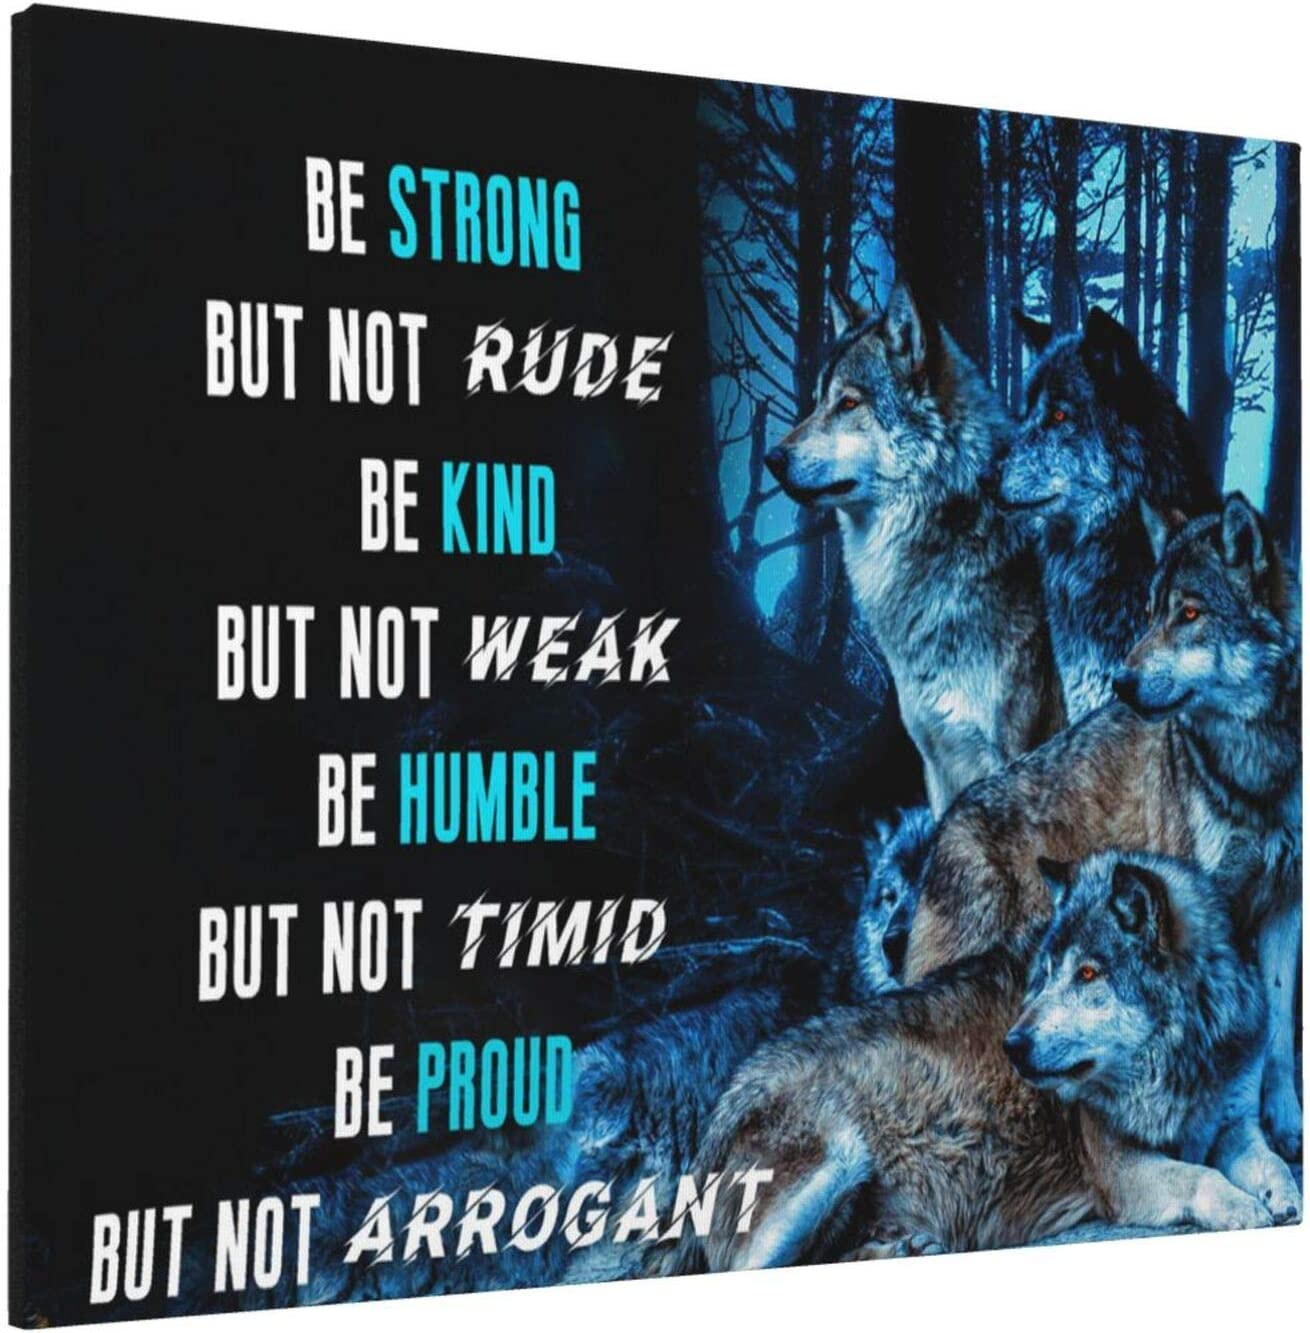 HANKCLES Motivational Wall Art Inspirational Quotes Office Canvas Poster Print Wolf Wall Decor Framed Artwork Mindset Like A Wolf Home Decor for Living Room Bedroom 16x20inch